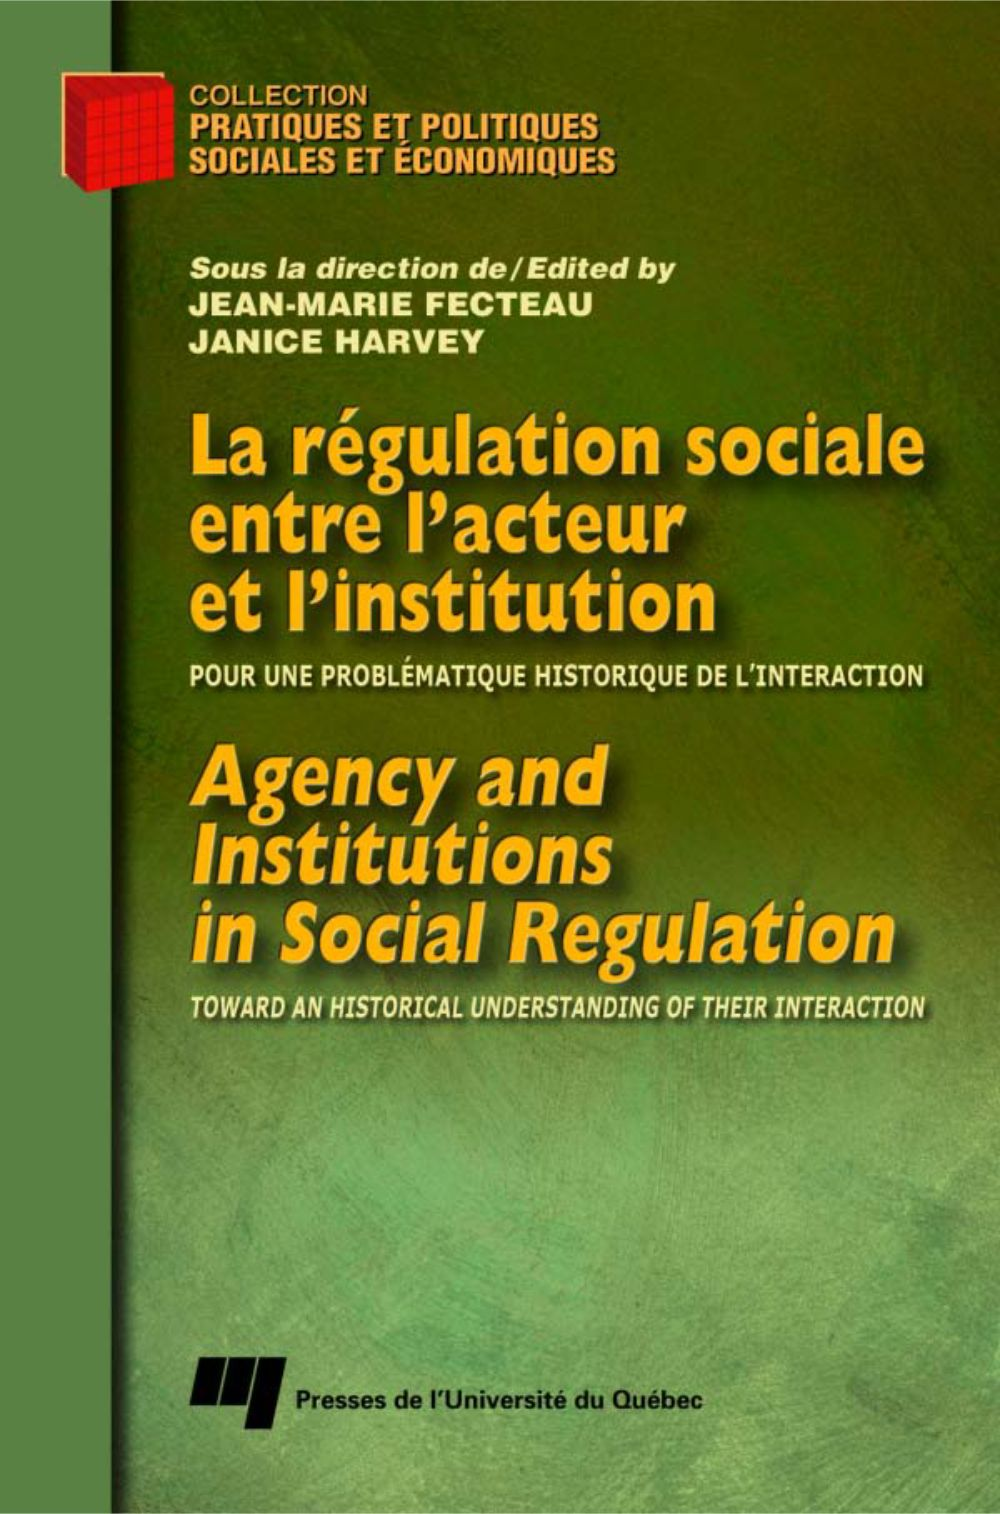 La régulation sociale entre l'acteur et l'institution / Agency and Institutions in Social Regulation